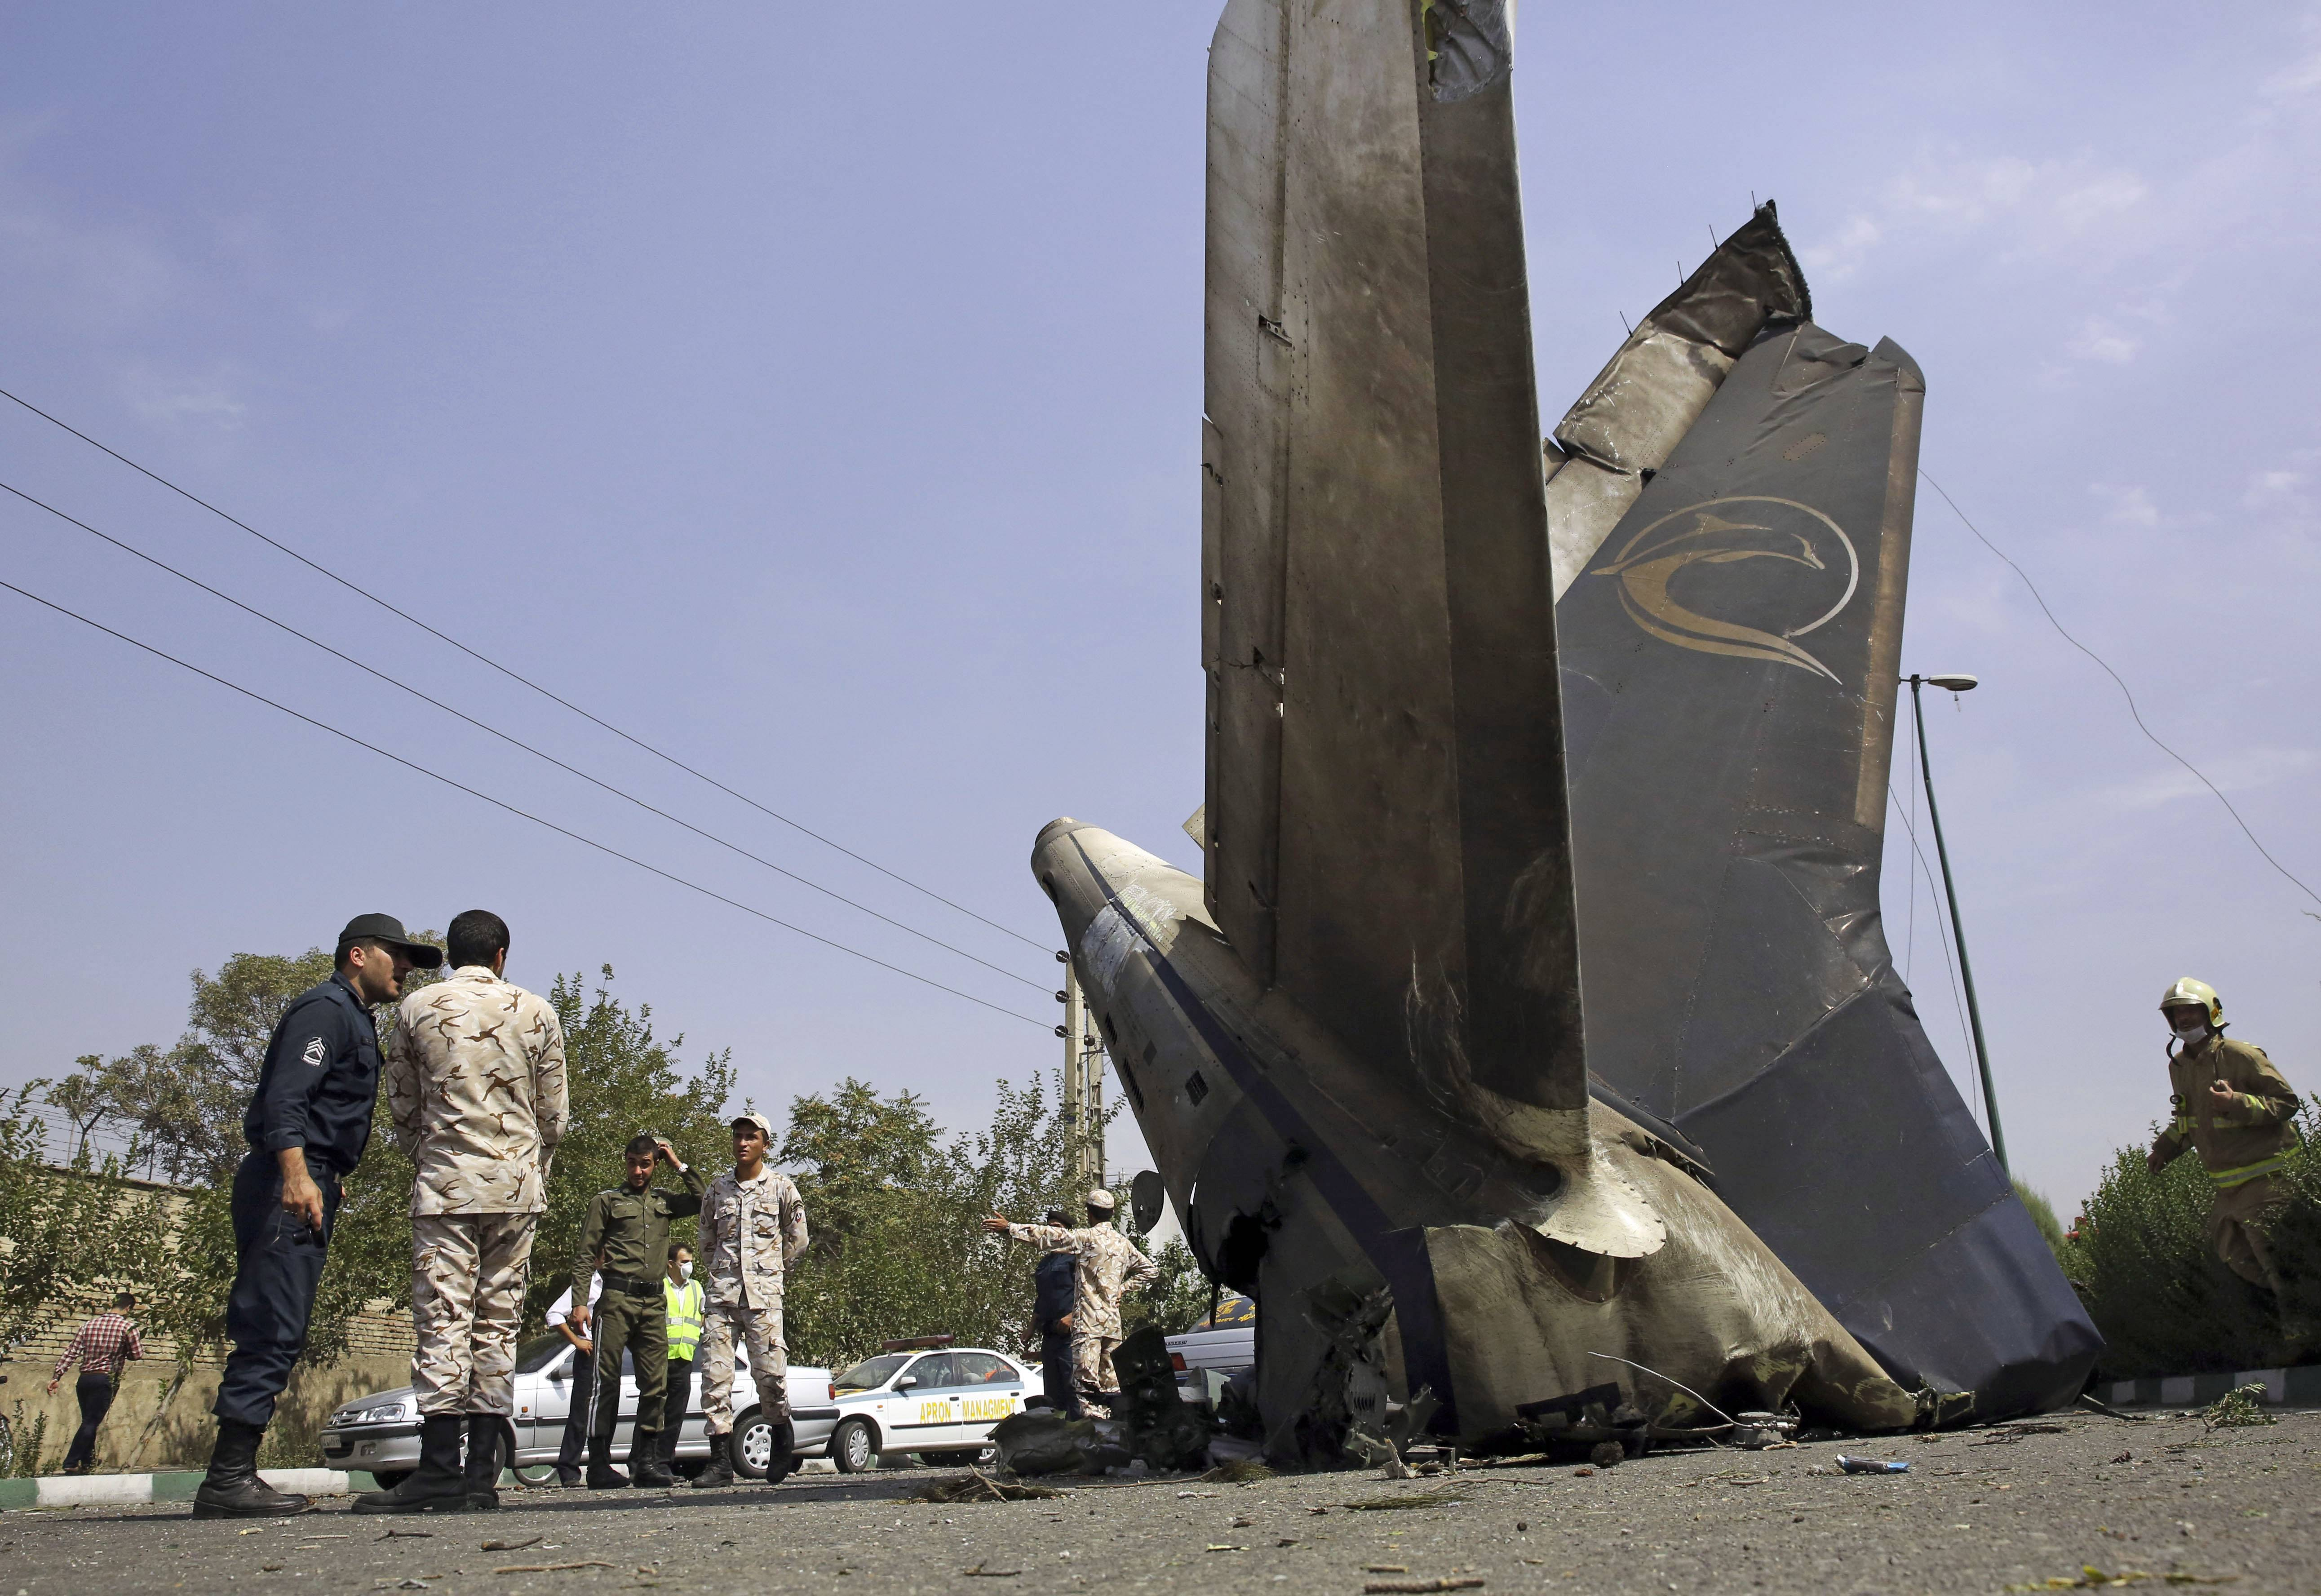 Iranian Revolutionary Guards inspect the site of a passenger plane crash near the capital Tehran, Iran, Sunday.